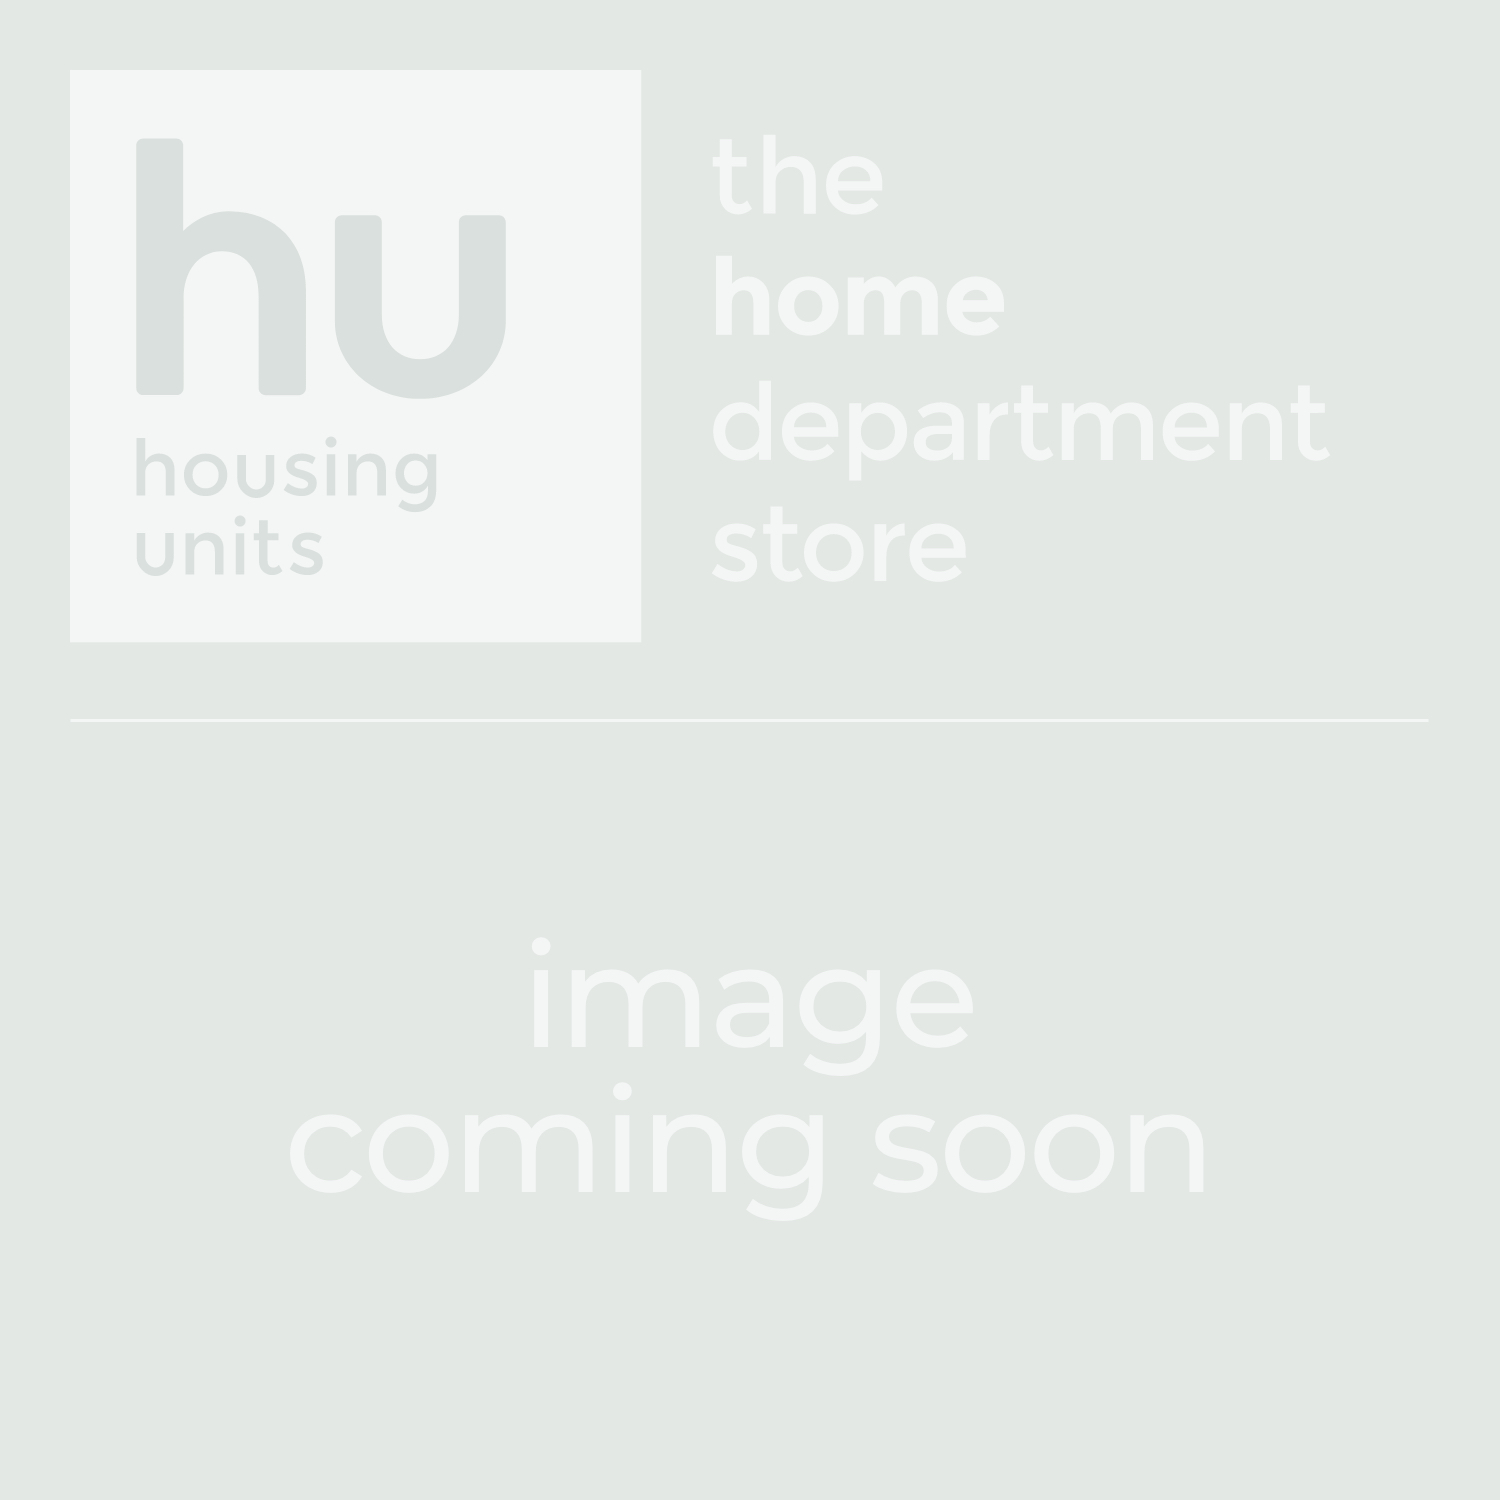 Rebecca Rectangular Wall Mirror - Angled View | Housing Units